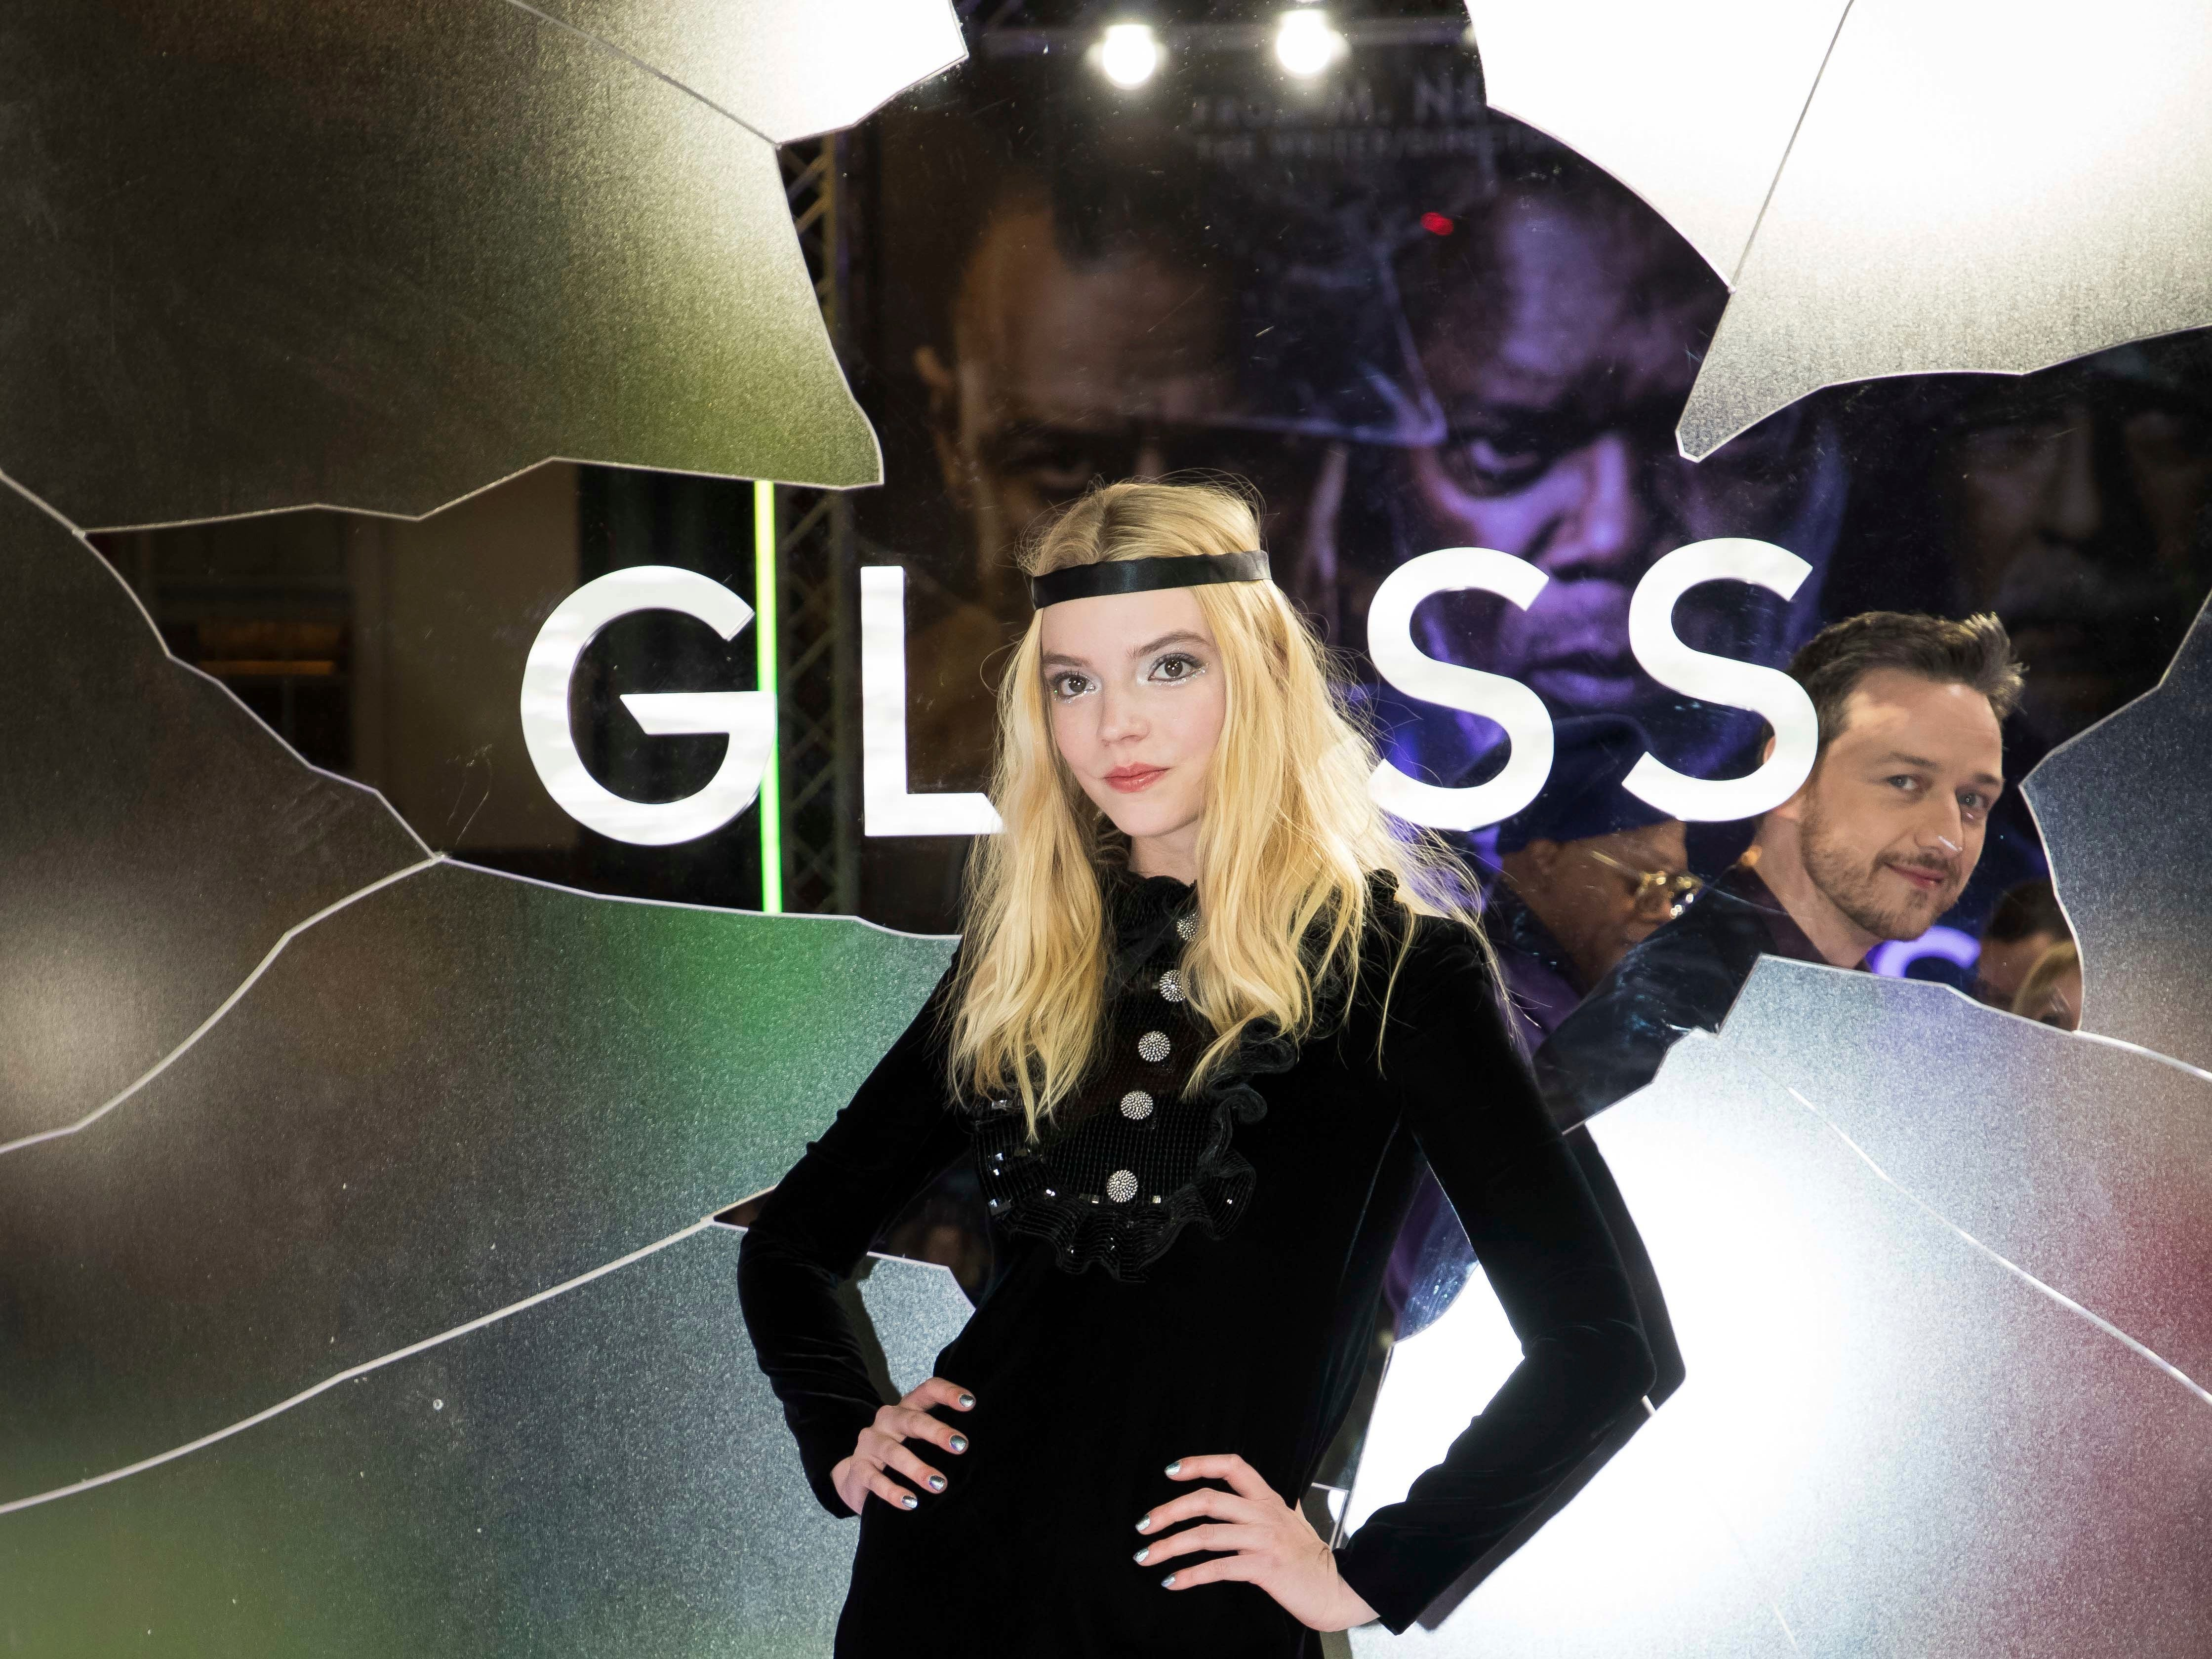 """Actress Anya Taylor-Joy, foreground, poses for photographers upon arrival at the premiere of the film """"Glass"""" in London, with fellow actor James McAvoy looking on, Wednesday, Jan. 9, 2019."""